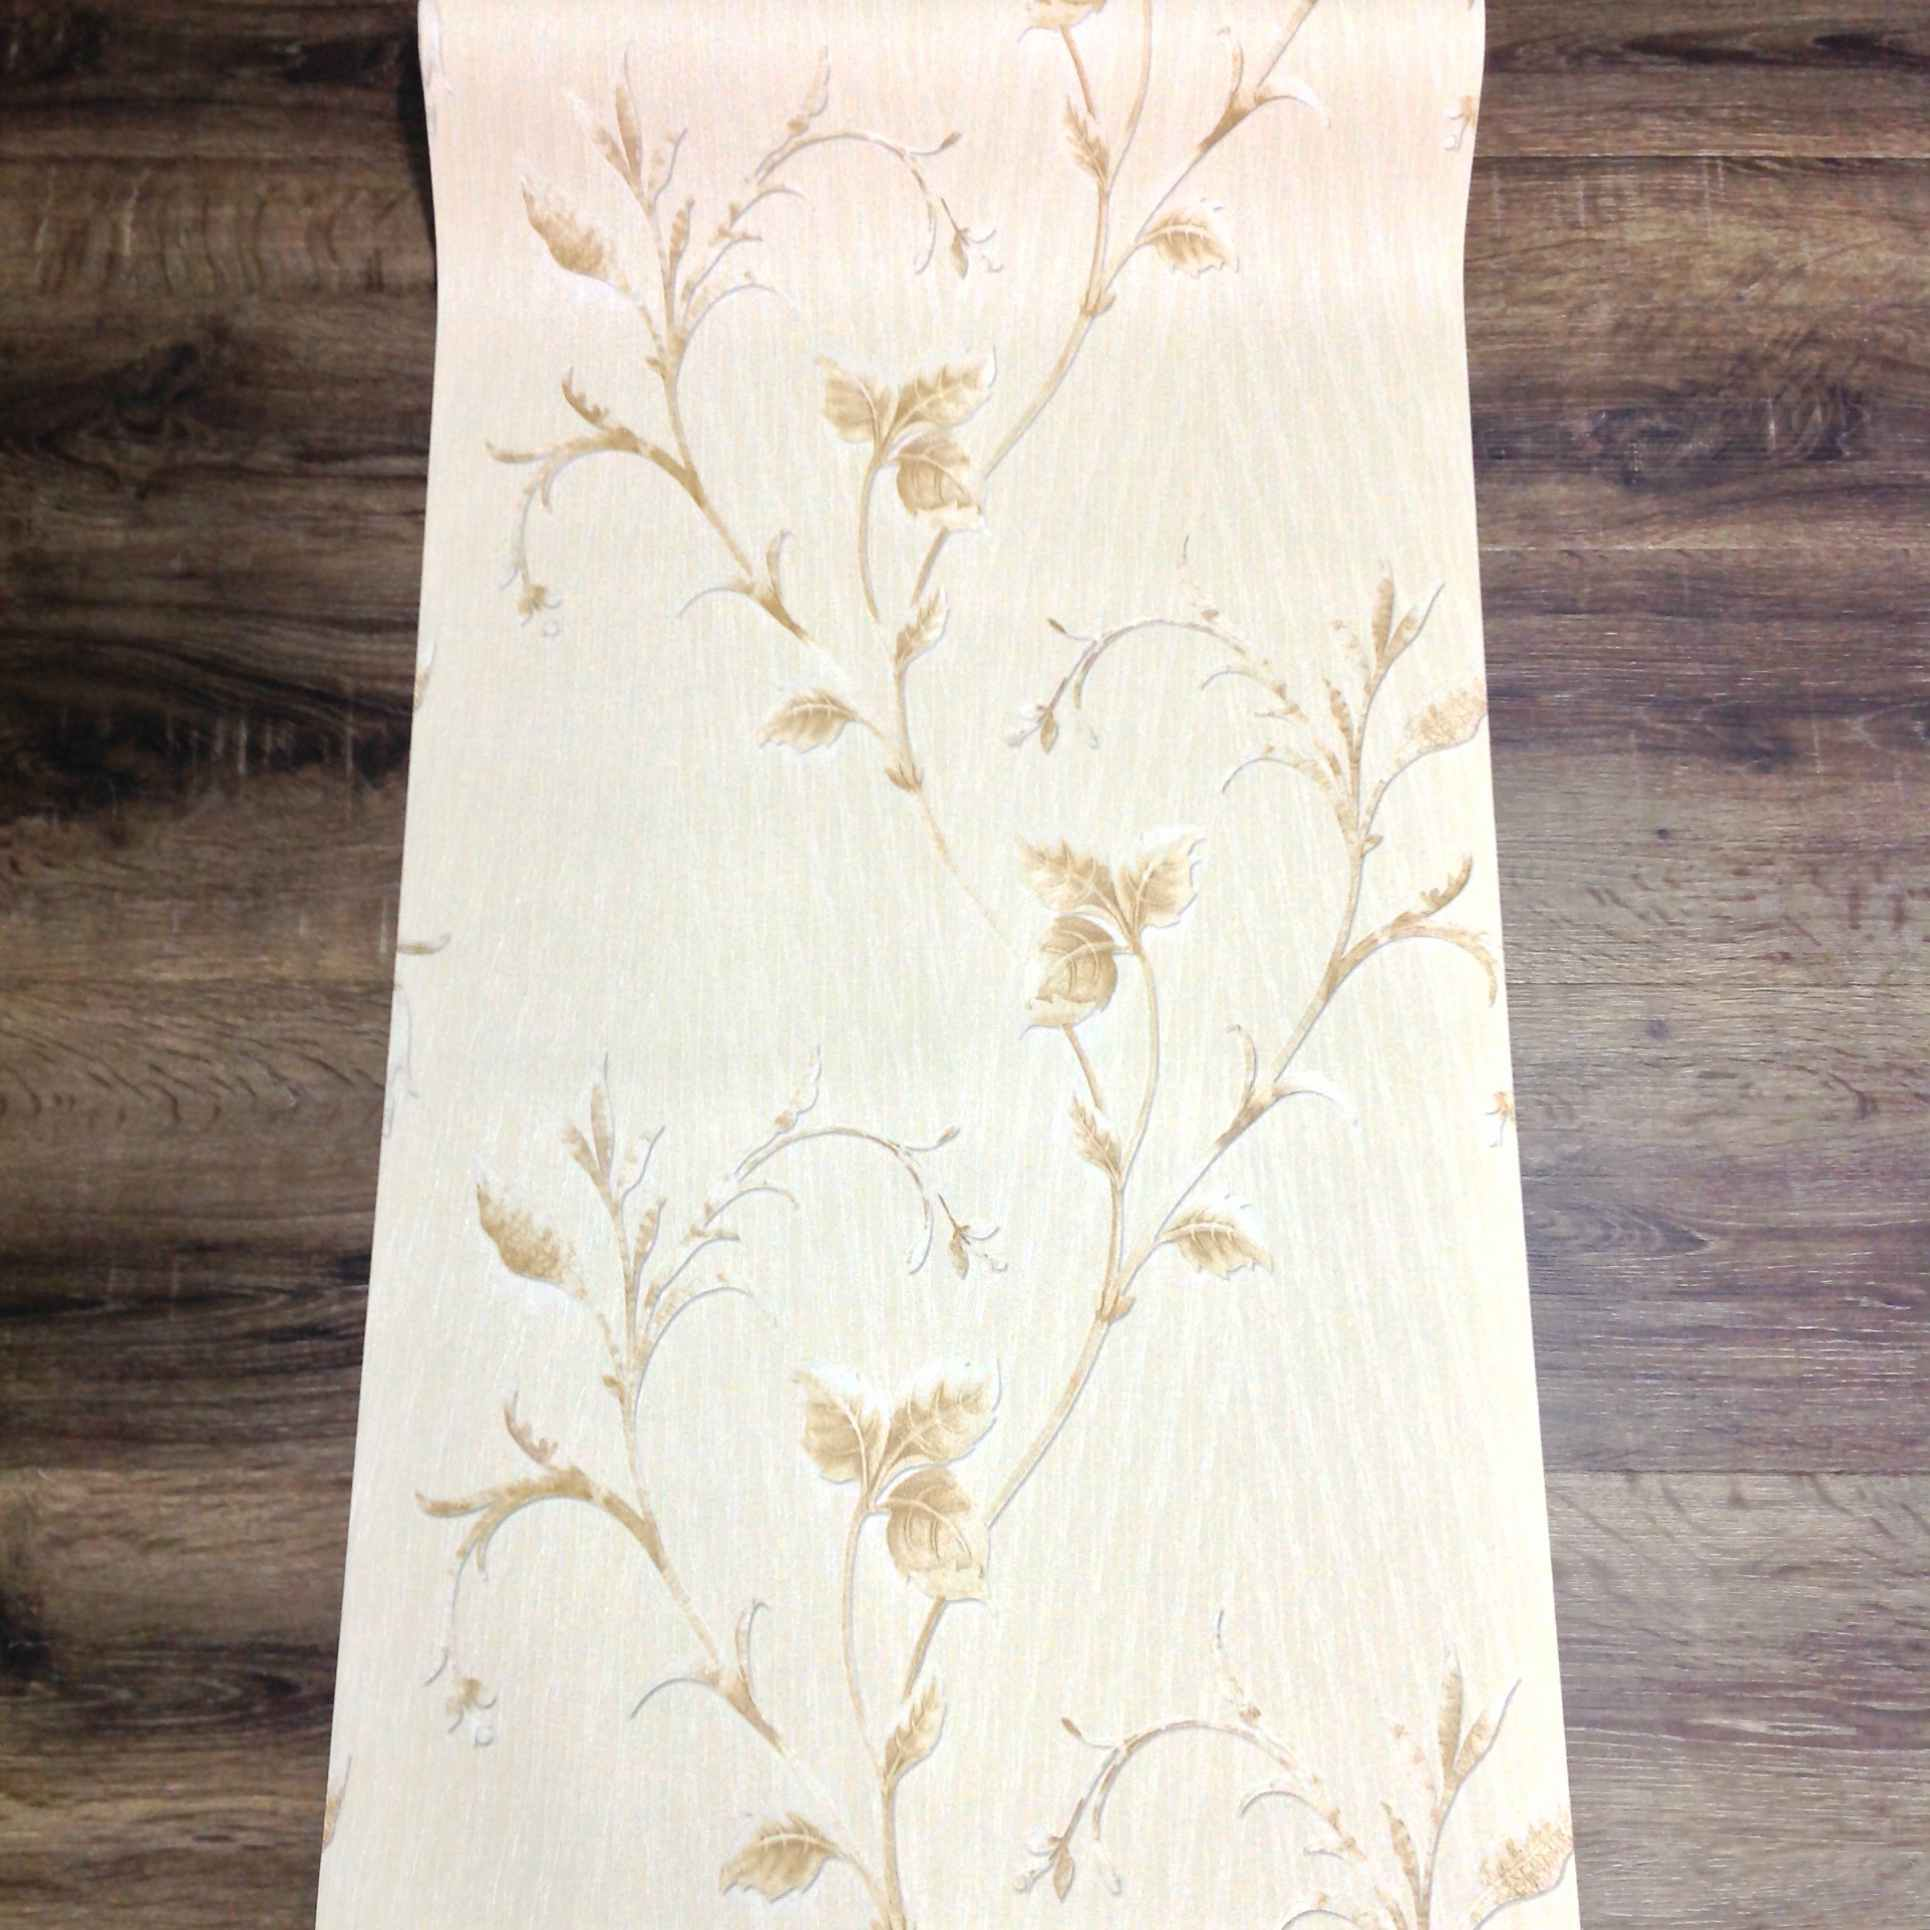 WALLPAPER CT-1862 Beige Floral Rustic Design